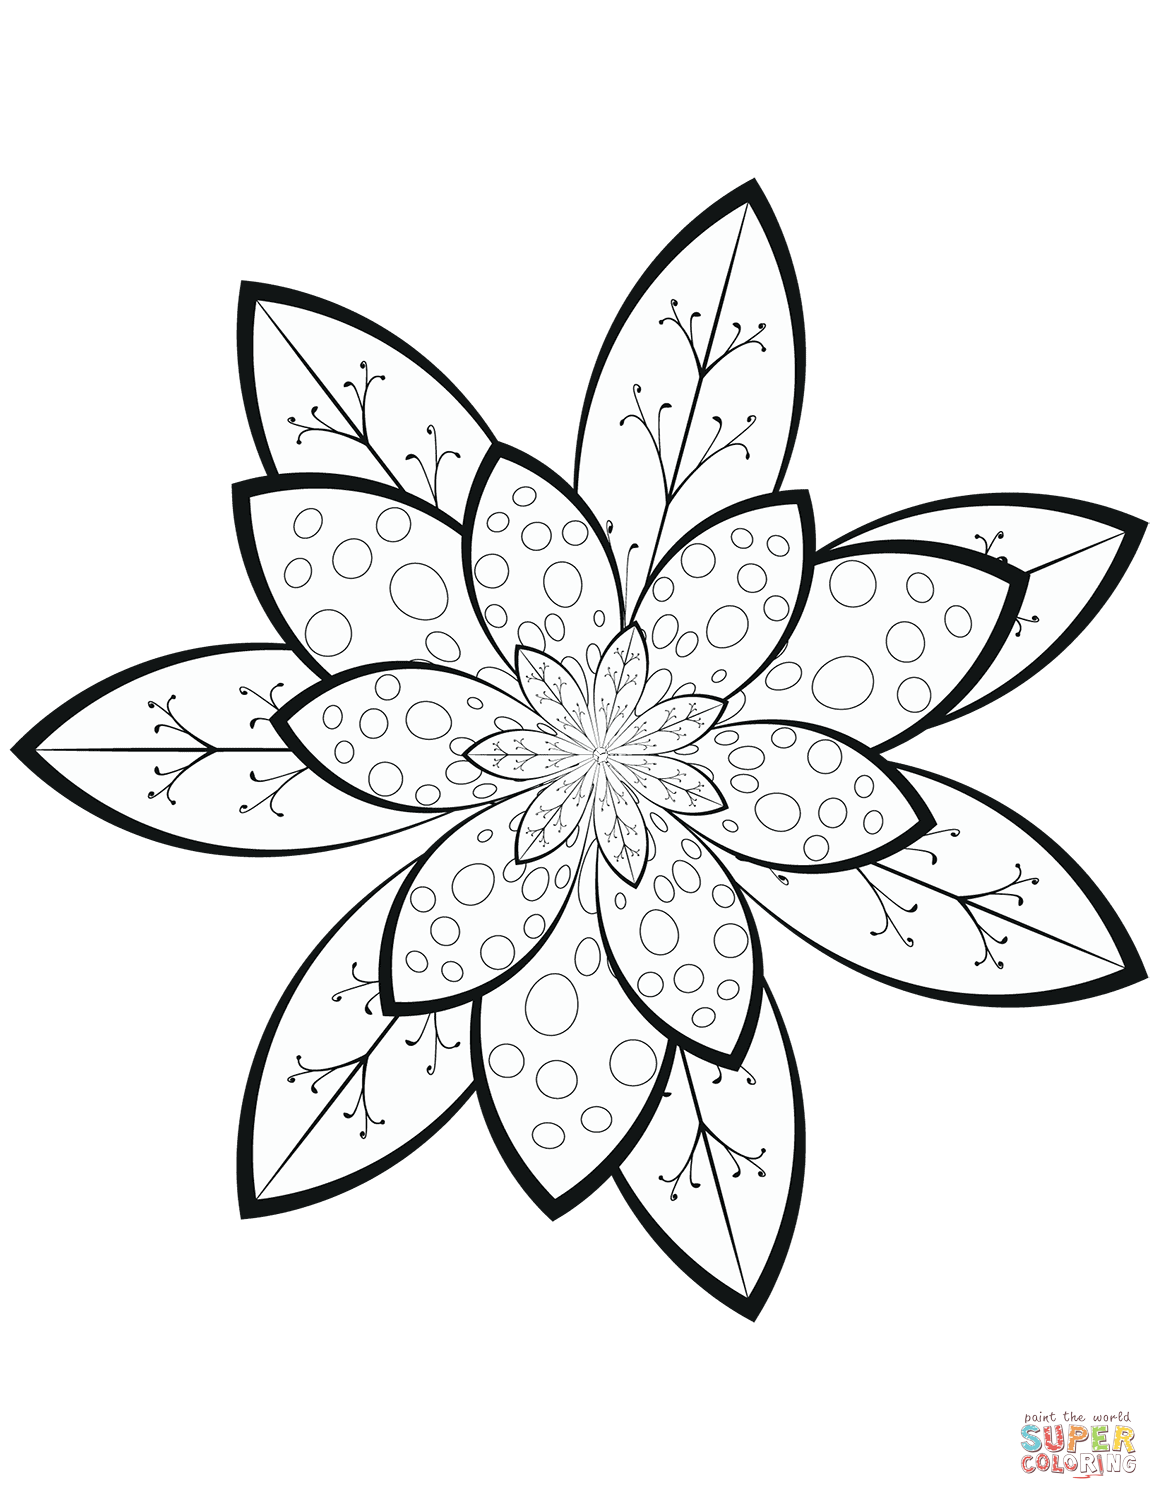 flower pattern coloring pages printable adult colouring page digital download print flower coloring pattern pages flower